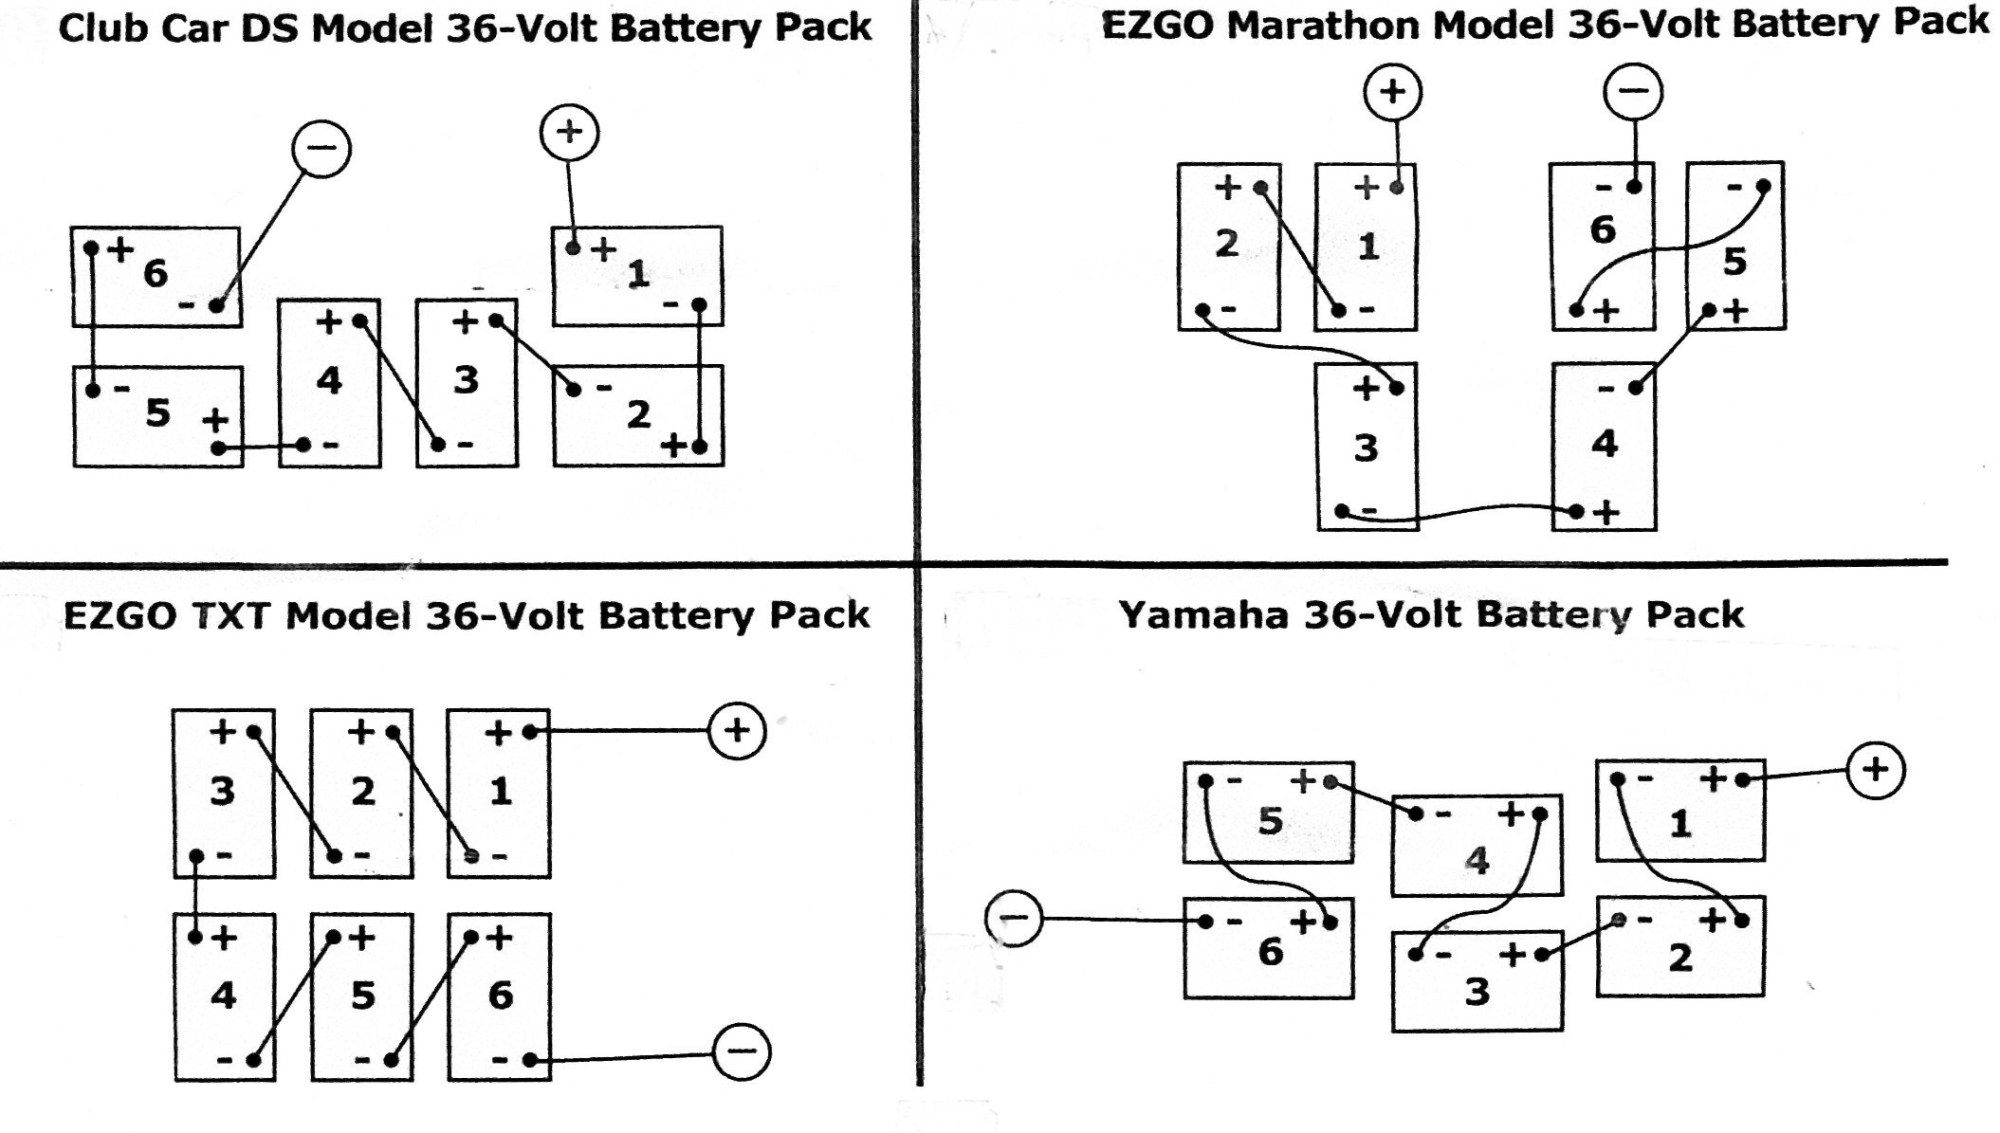 hight resolution of yamaha golf cart battery wiring diagram download wiring diagrams for yamaha golf carts refrence ez